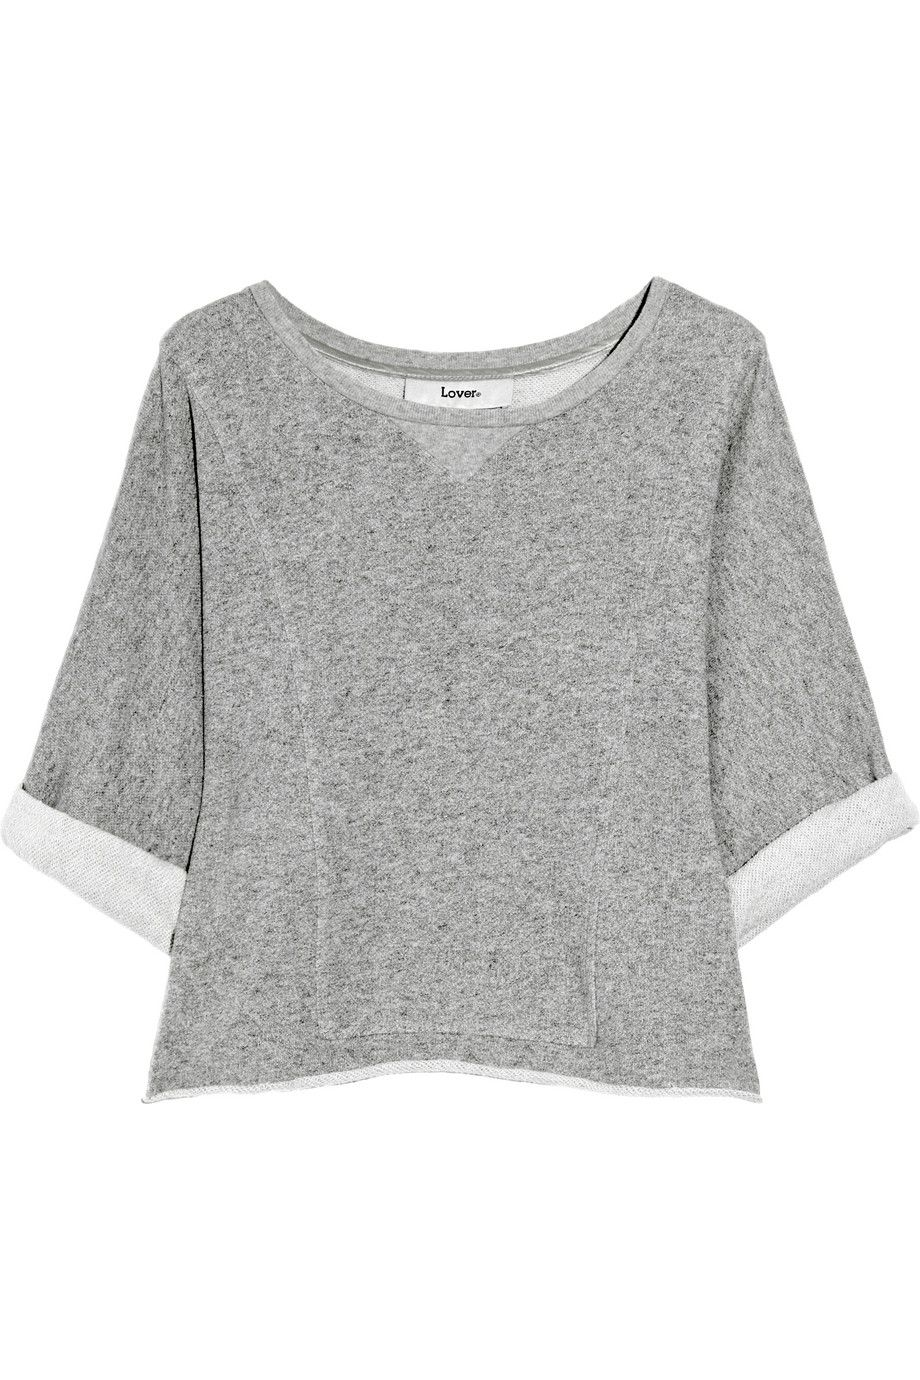 cropped cotton sweater | Loosen up, girl | Pinterest | Cotton ...